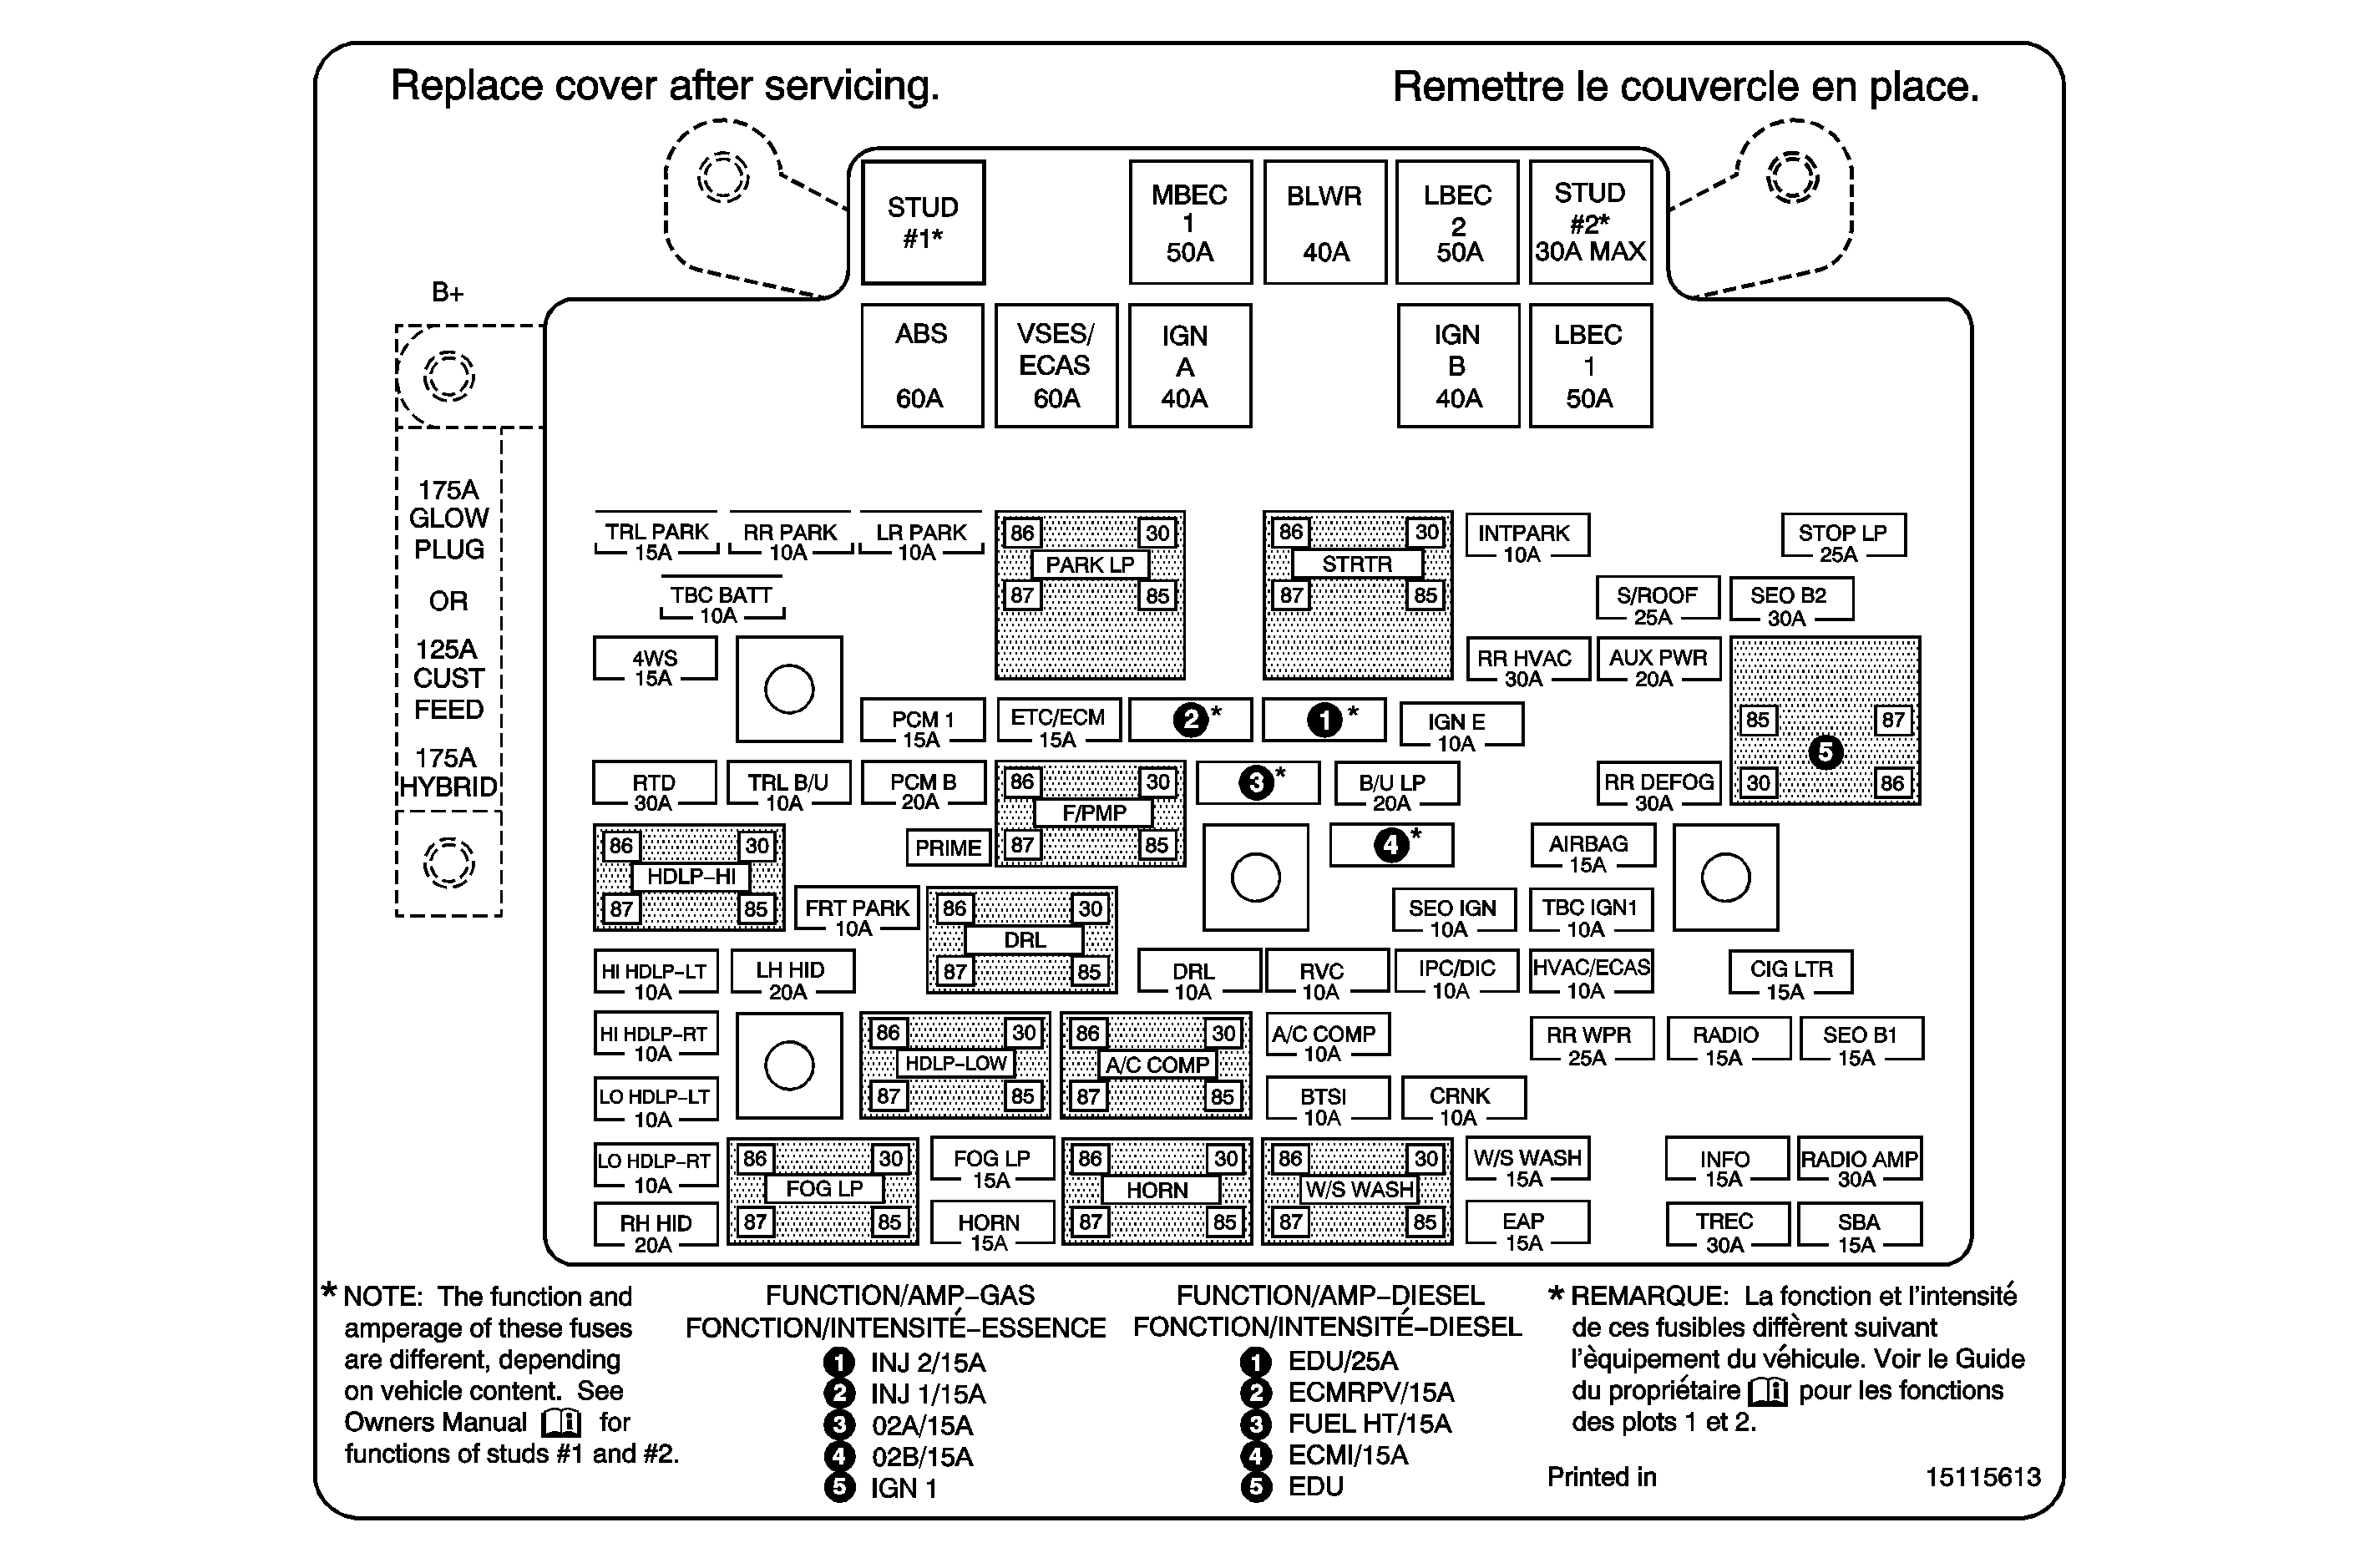 Diagram Fuse Box Diagram For 2002 Gmc Envoy Full Version Hd Quality Gmc Envoy Patentdiagram Argiso It